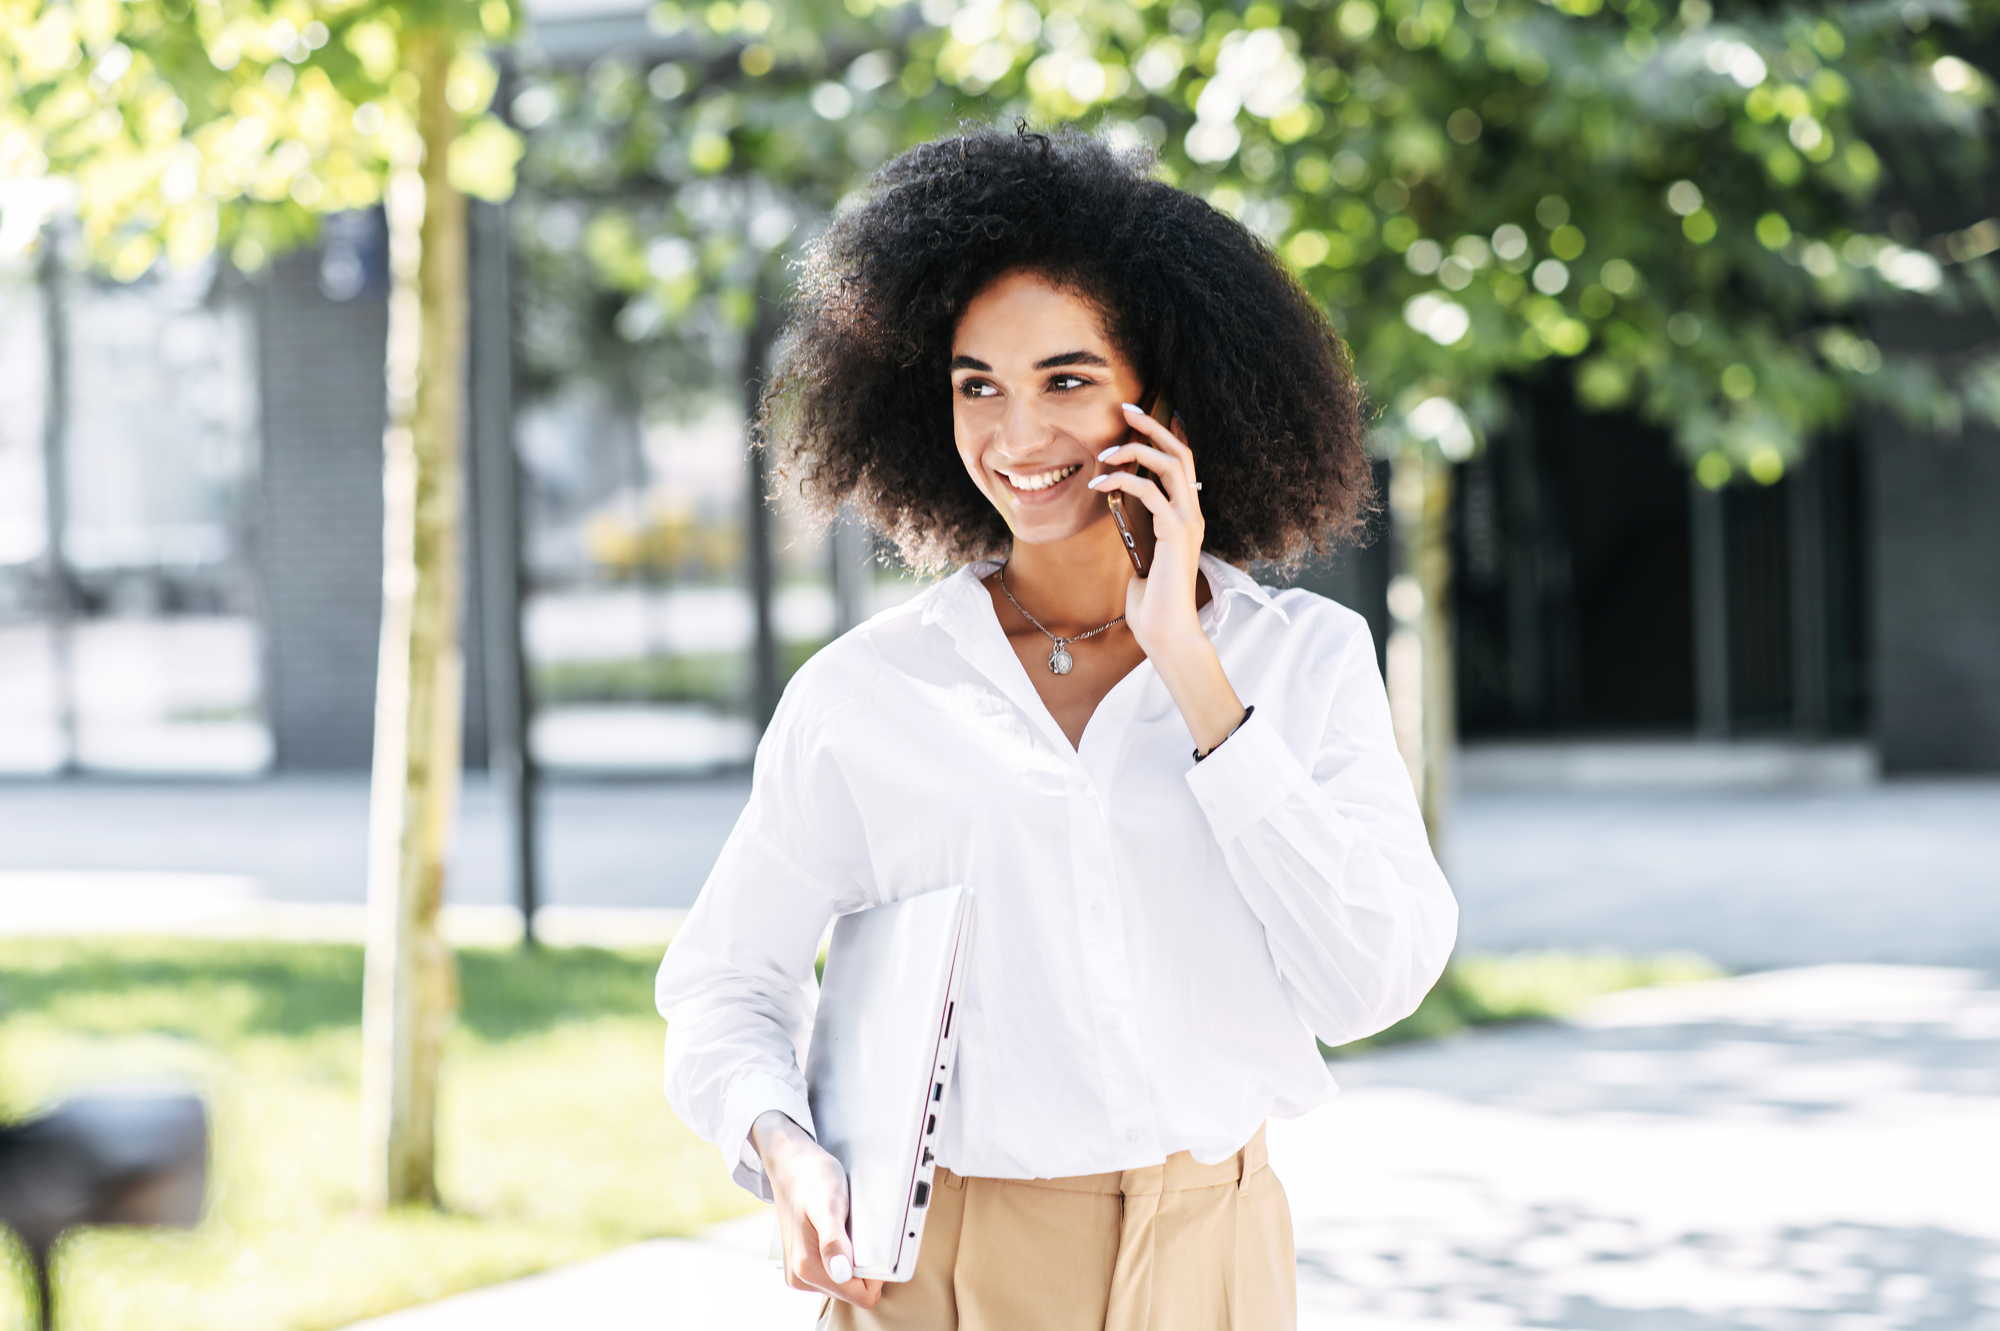 A woman is talking on the phone outdoors